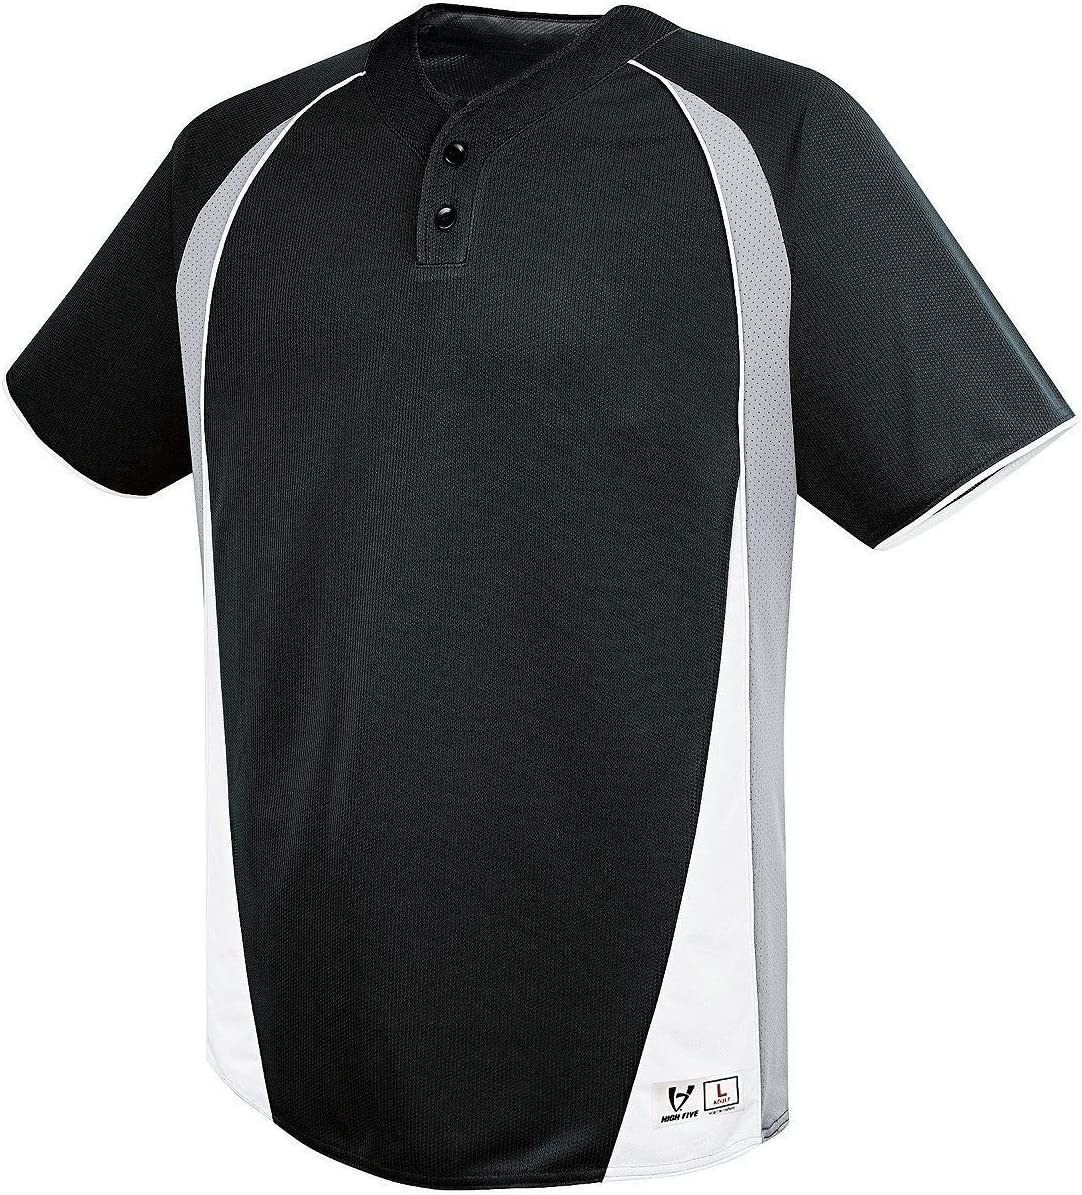 Augusta Sportswear Boys Ace Two-Button Silver Jersey Black Max Outlet ☆ Free Shipping 63% OFF S Gre